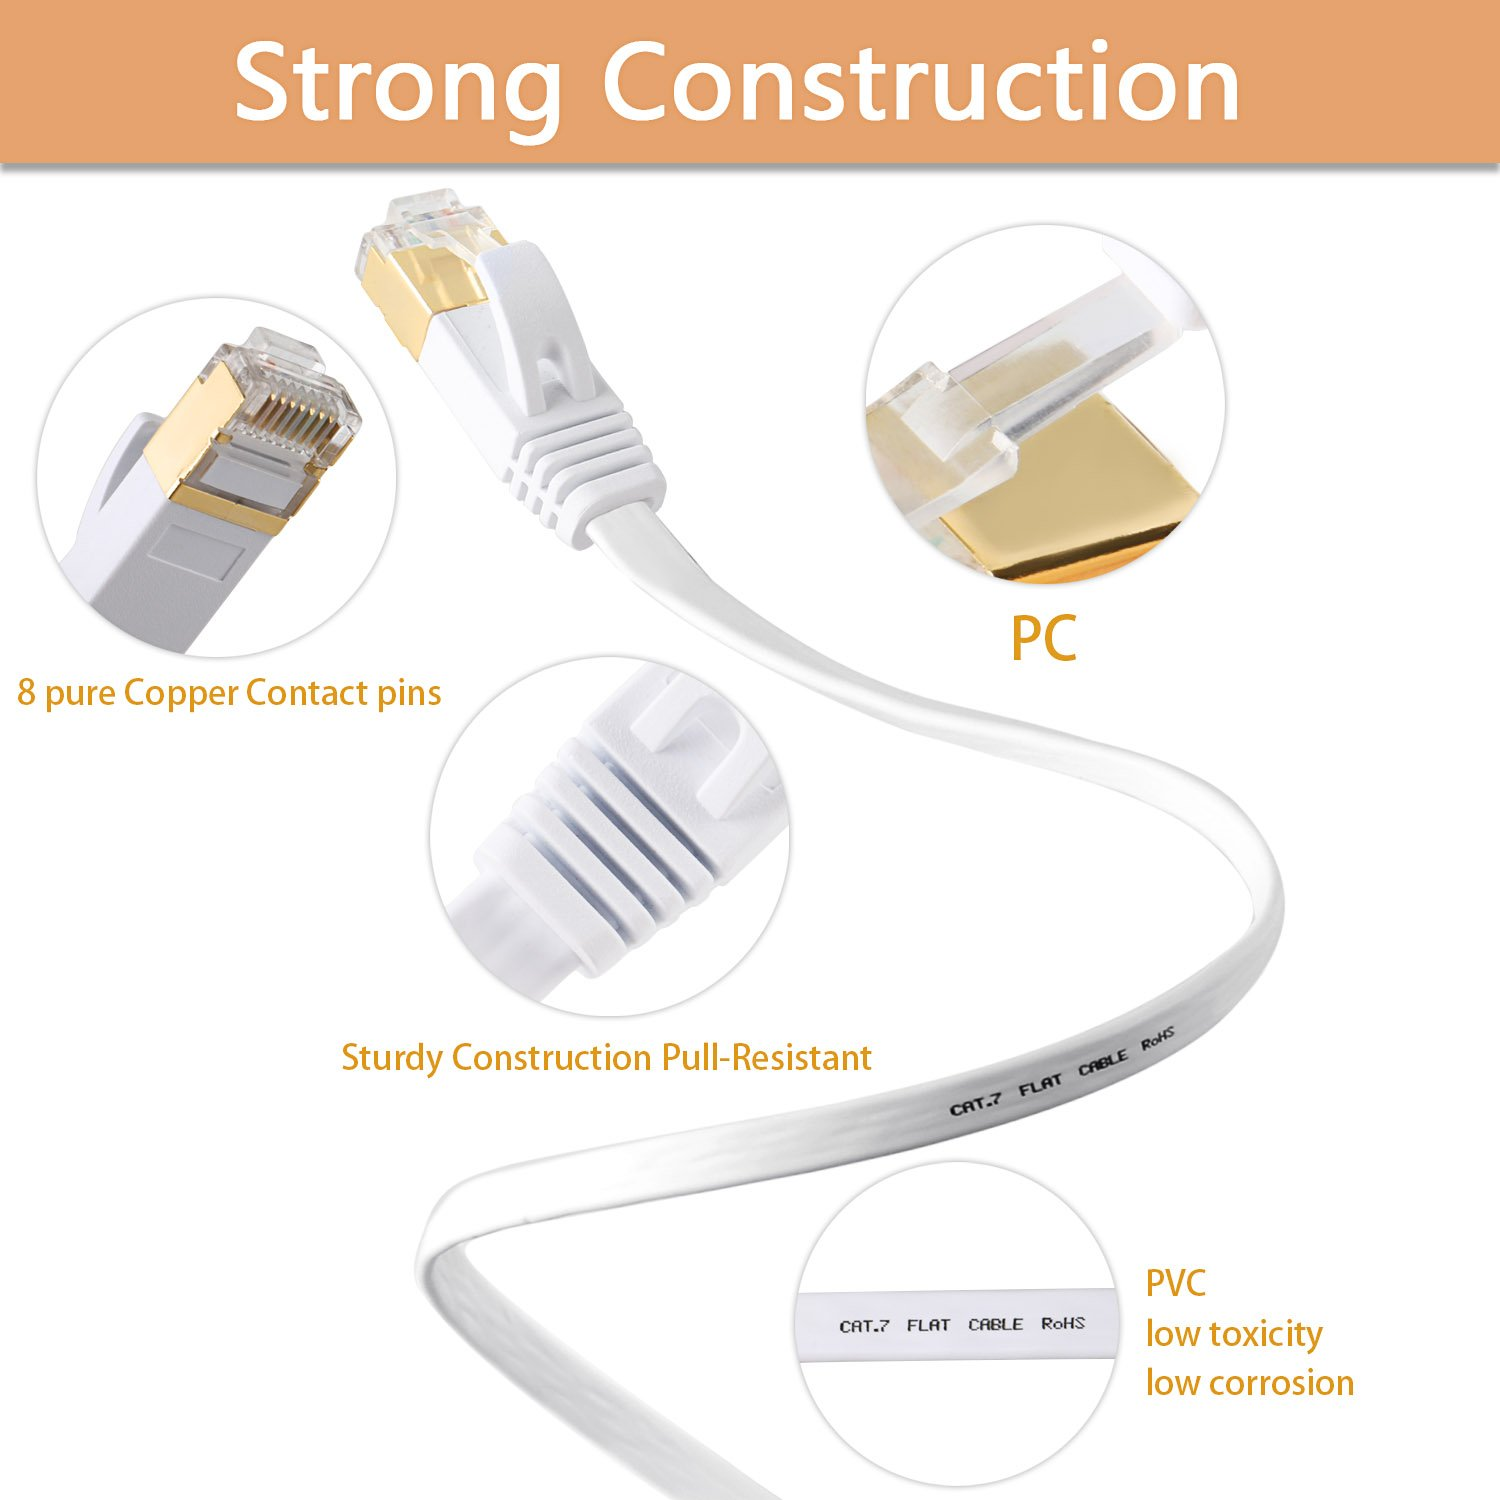 50 ft Ethernet Cable Cat7,Flat Gigabit Network Cable for Computer/Router with Clip&RJ45 Connector,Higher Speed Than Cat6/Cat5 Shielded Internet LAN Cord for PS4,Xbox,Adapter,Switch,Modem,PC-White by MATEIN (Image #4)